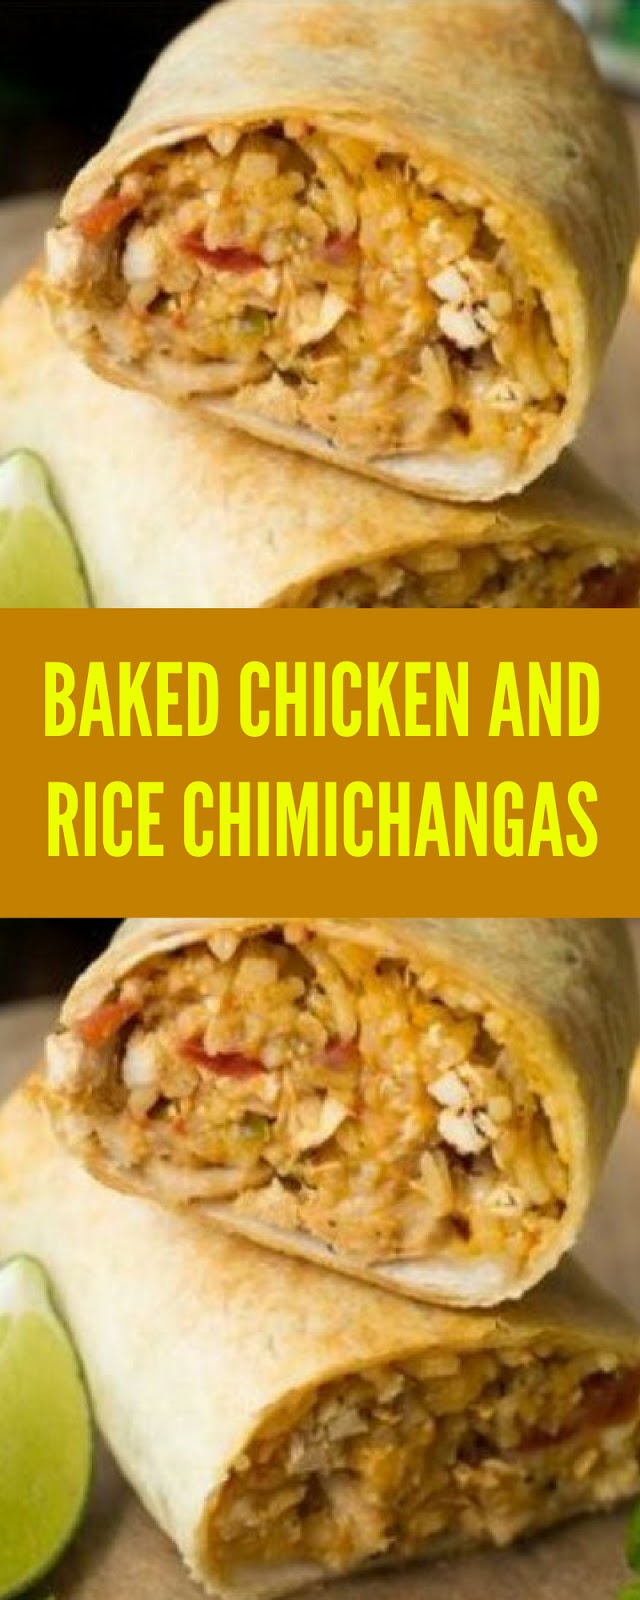 DEKICIOUS AND EASY BAKED CHICKEN AND RICE CHIMICHANGAS